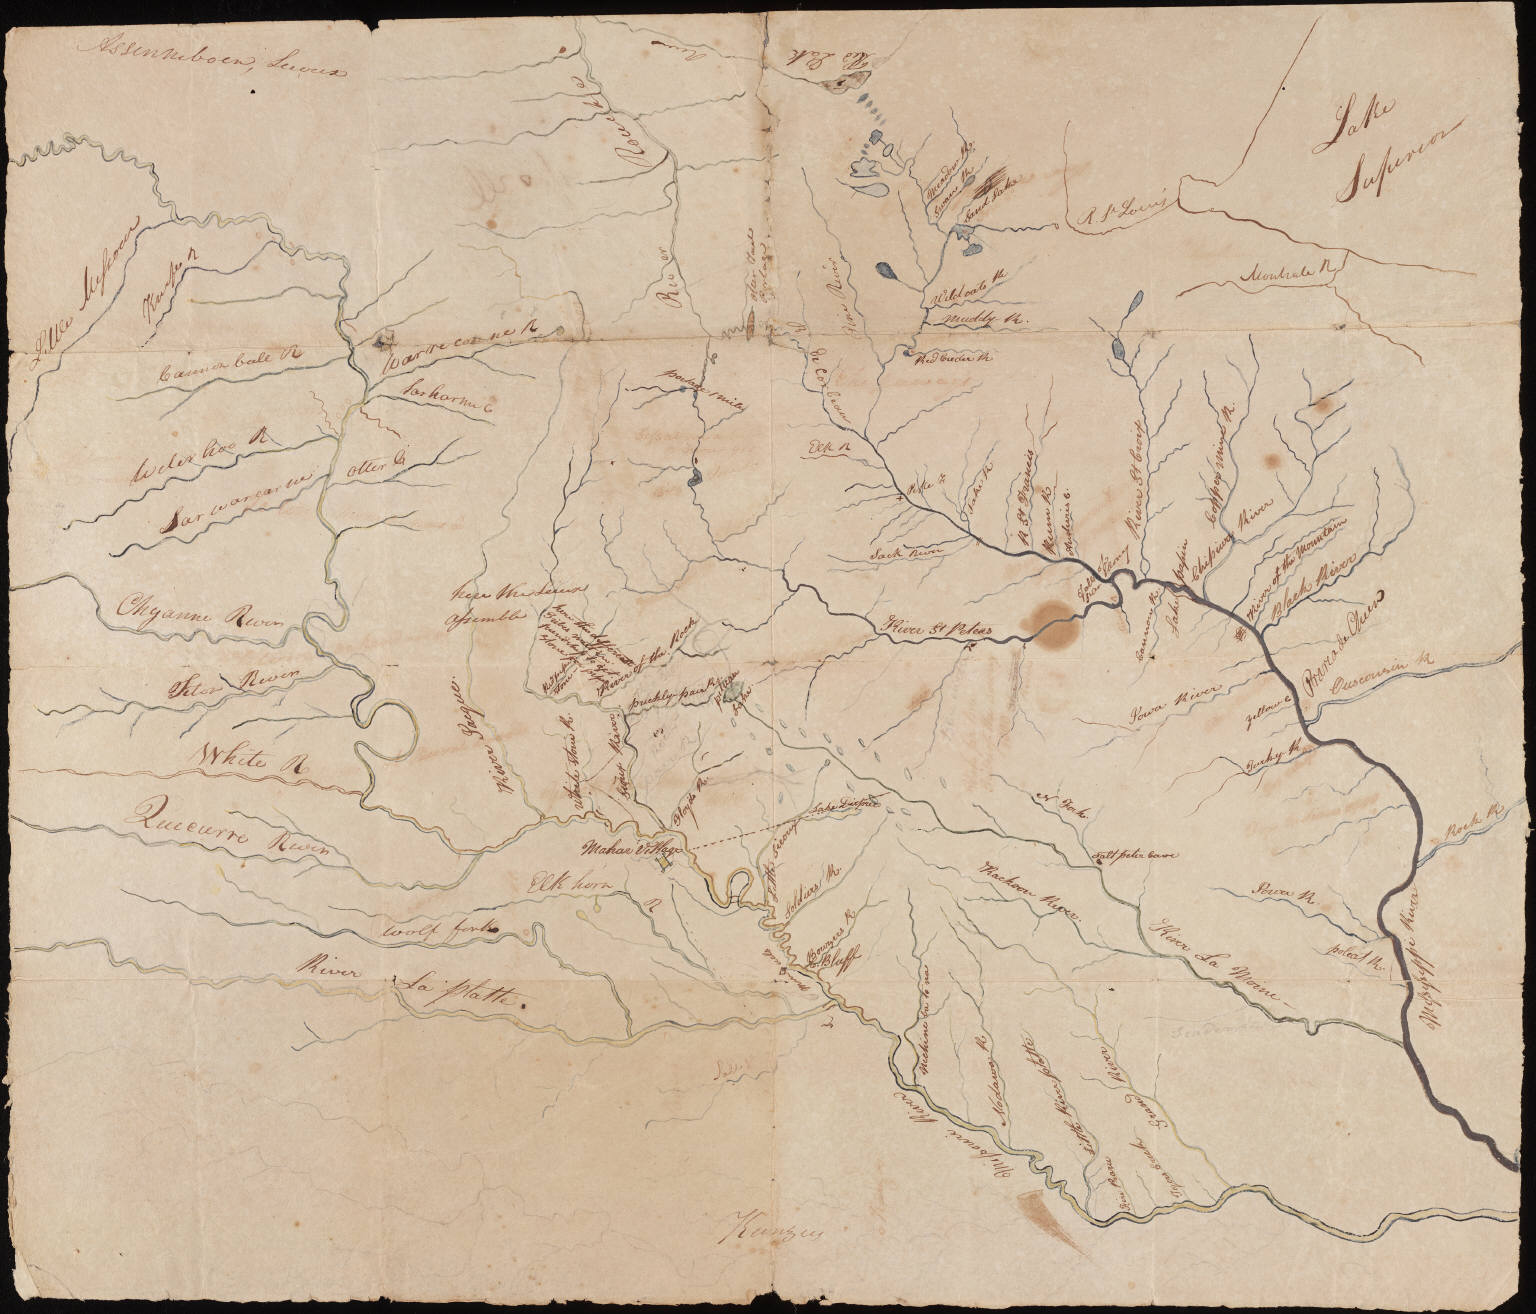 A map from the Lewis and Clark Expedition (Courtesy of Yale University Library via Wikimedia Commons).